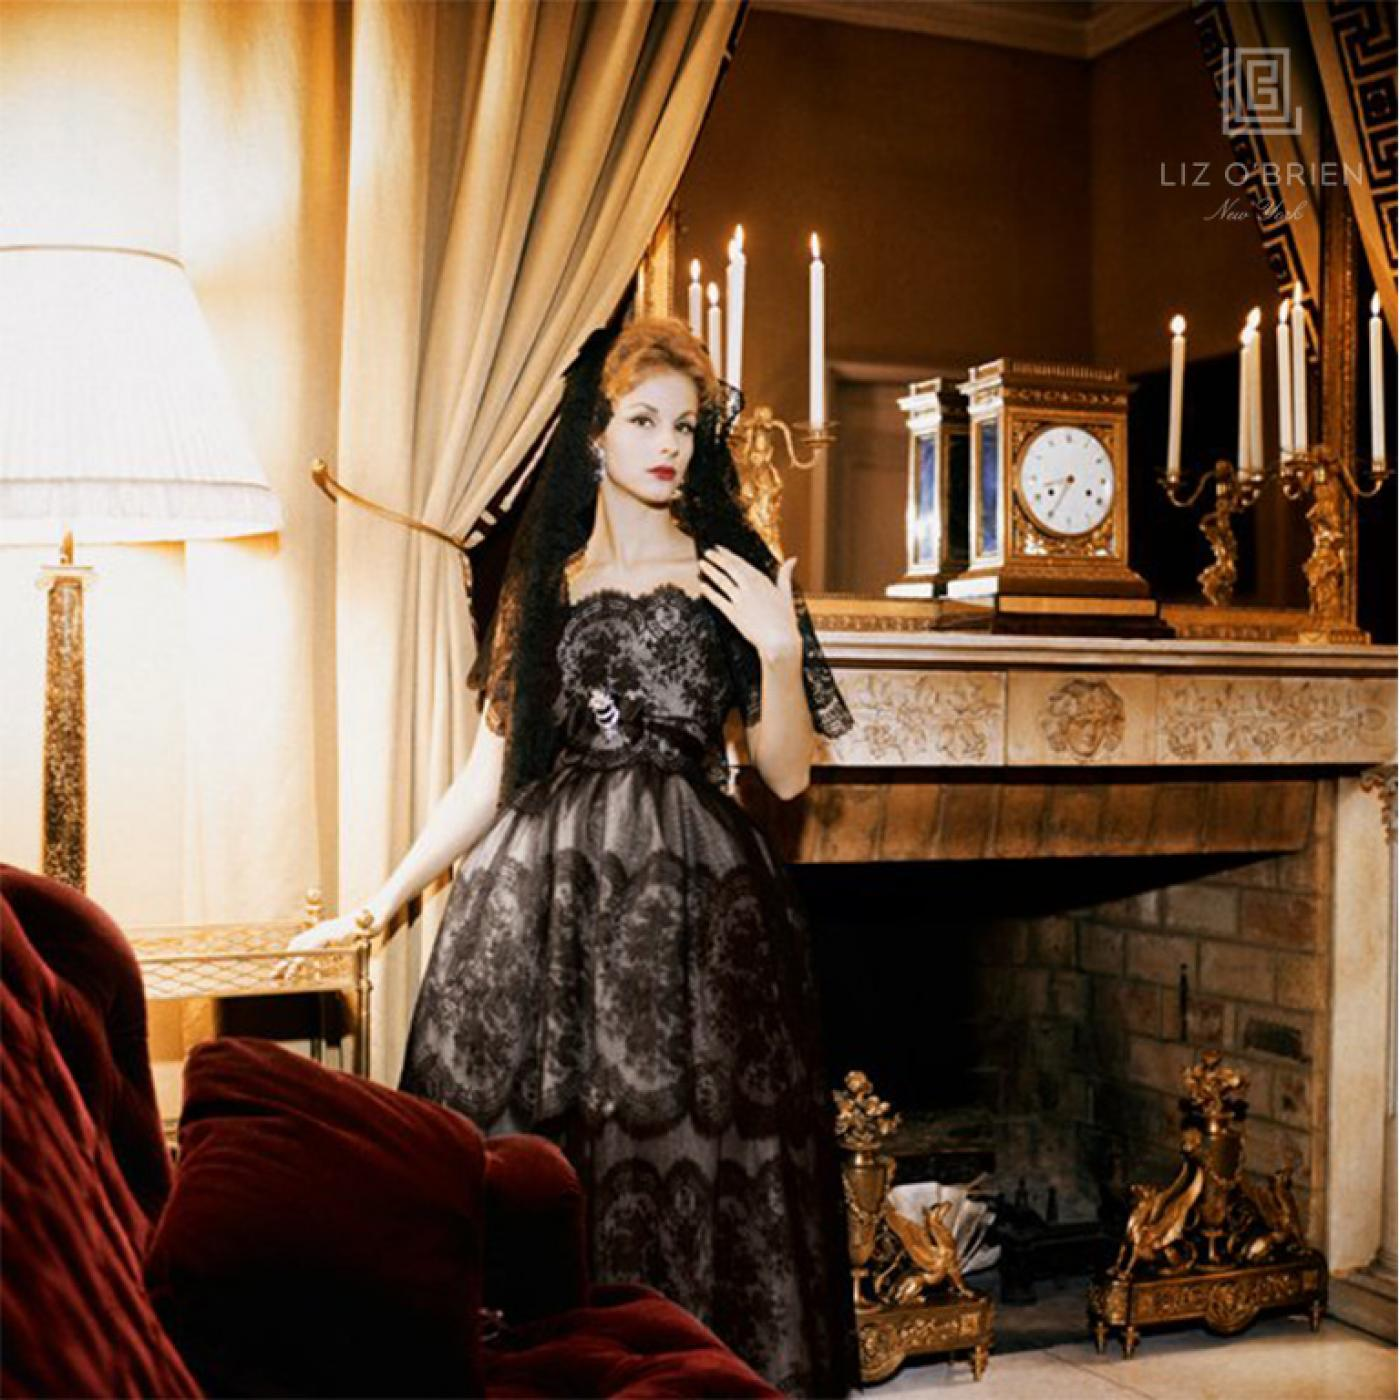 Mark Shaw - Mrs. Patrick Guinness in Dior Black Lace Gown